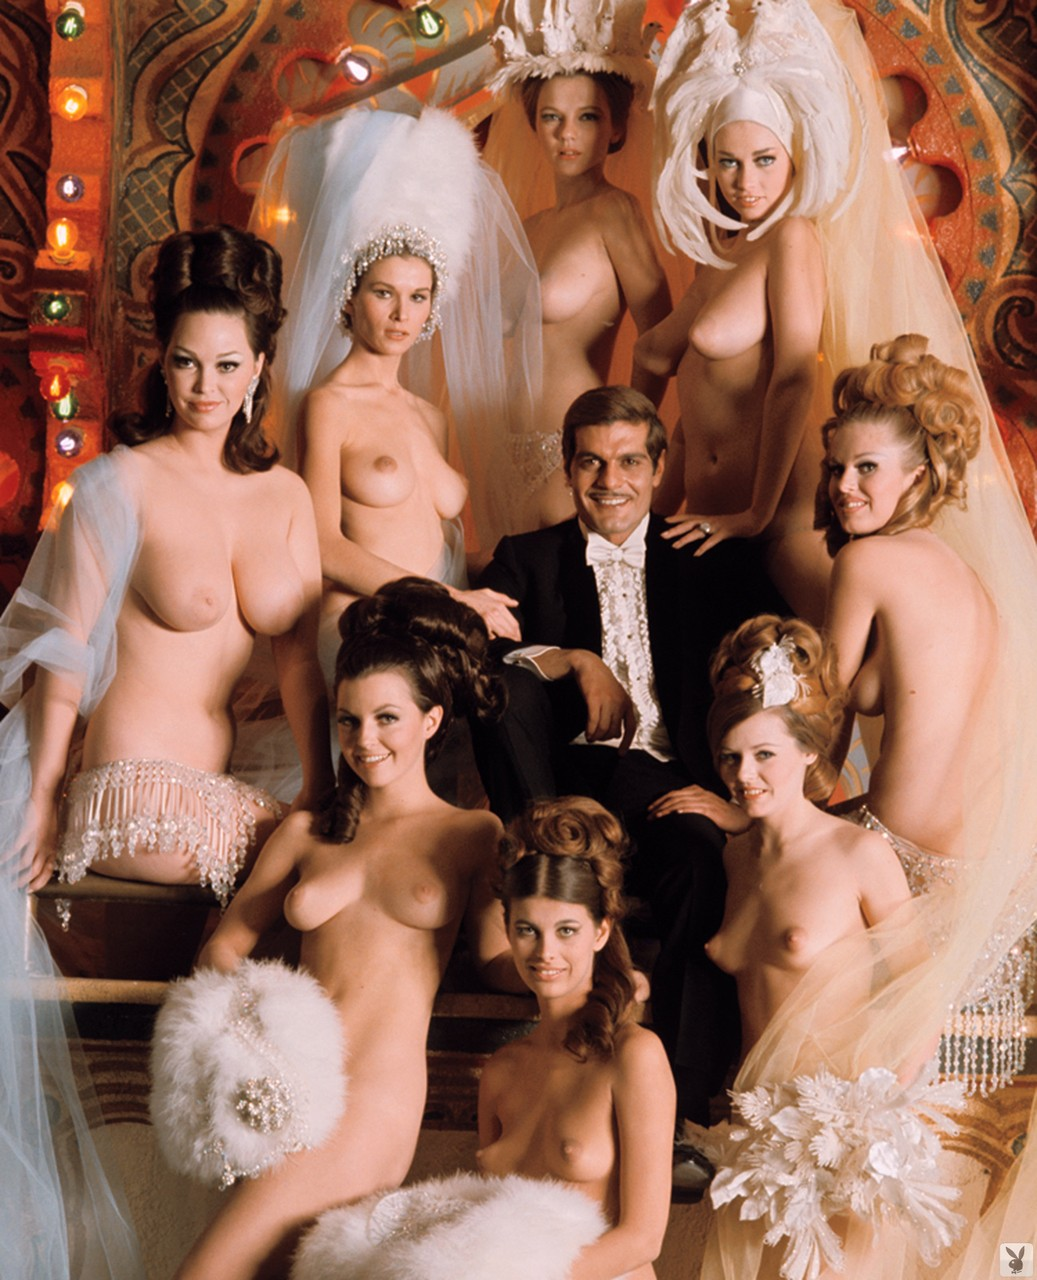 Vintage Playboy models reveal their gorgeous natural knockers and pose ポルノ写真 #422164771 | Playboy Plus, Allison Parks, Avis Kimble, China Lee, Christa Speck, Claudia Jennings, Connie Kreski, Connie Mason, Cynthia Myers, DeDe Lind, Dolly Read, Donna Michelle, Elke Sommer, Gwen Wong, Heidi Becker, Jayne Mansfield, Jo Collins, Julie Newmar, June Cochran, June,, モバイルポルノ